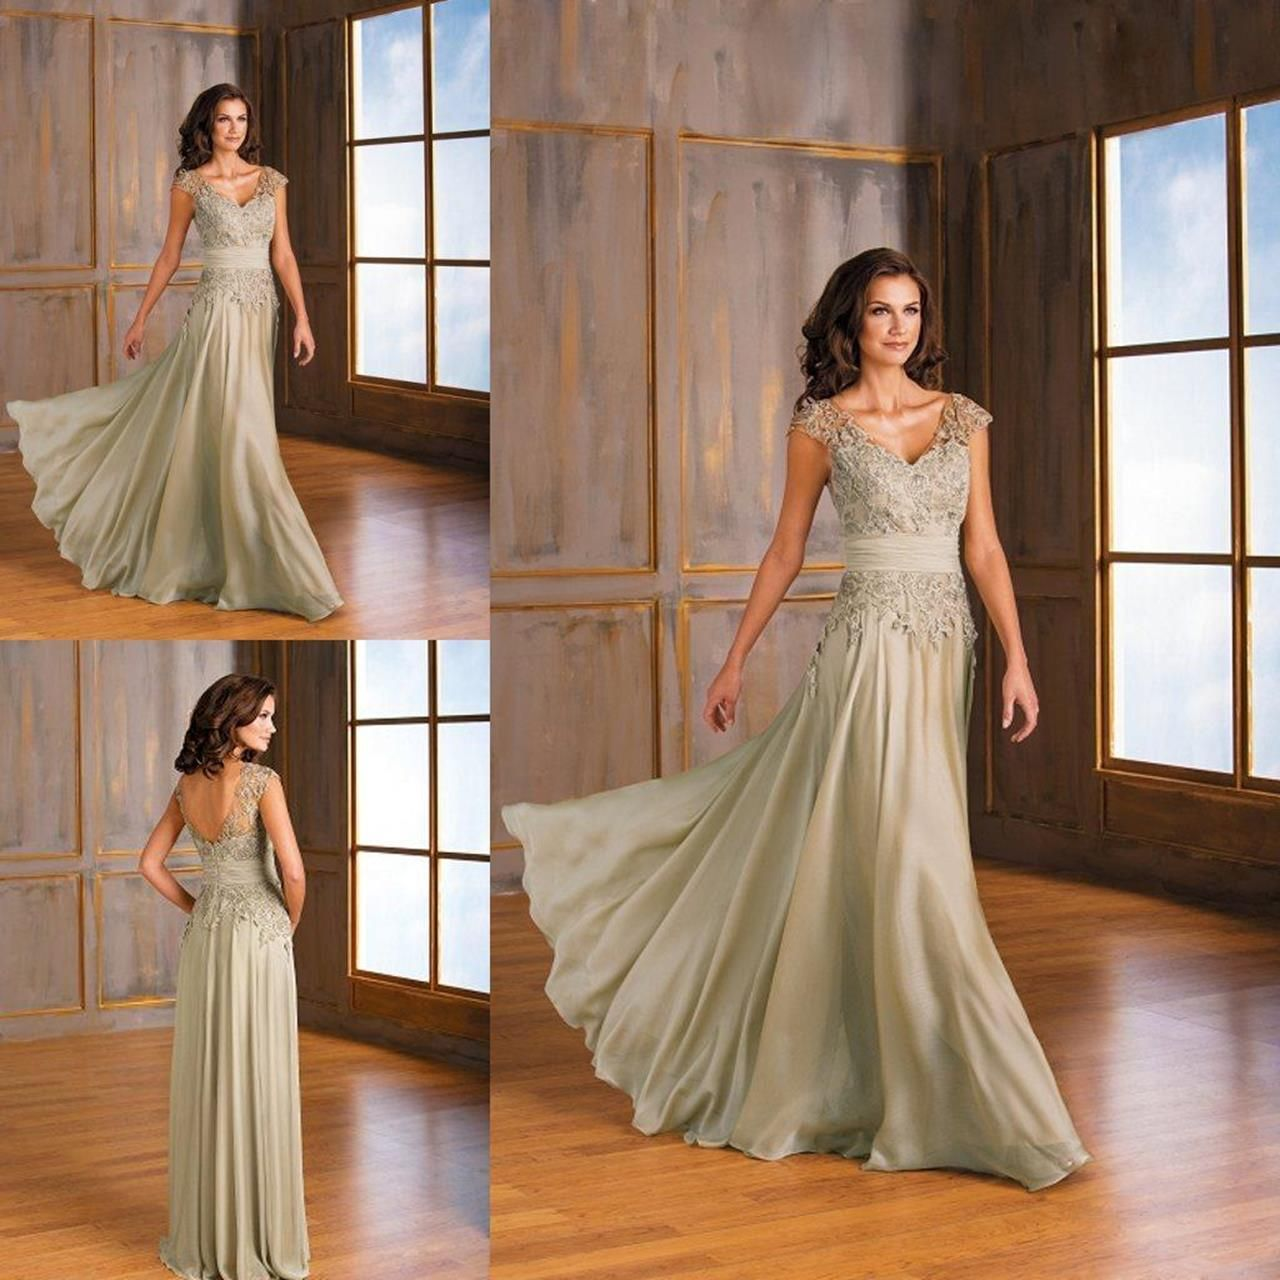 Mother Of The Groom Dresses For Spring Wedding 21 in 2020